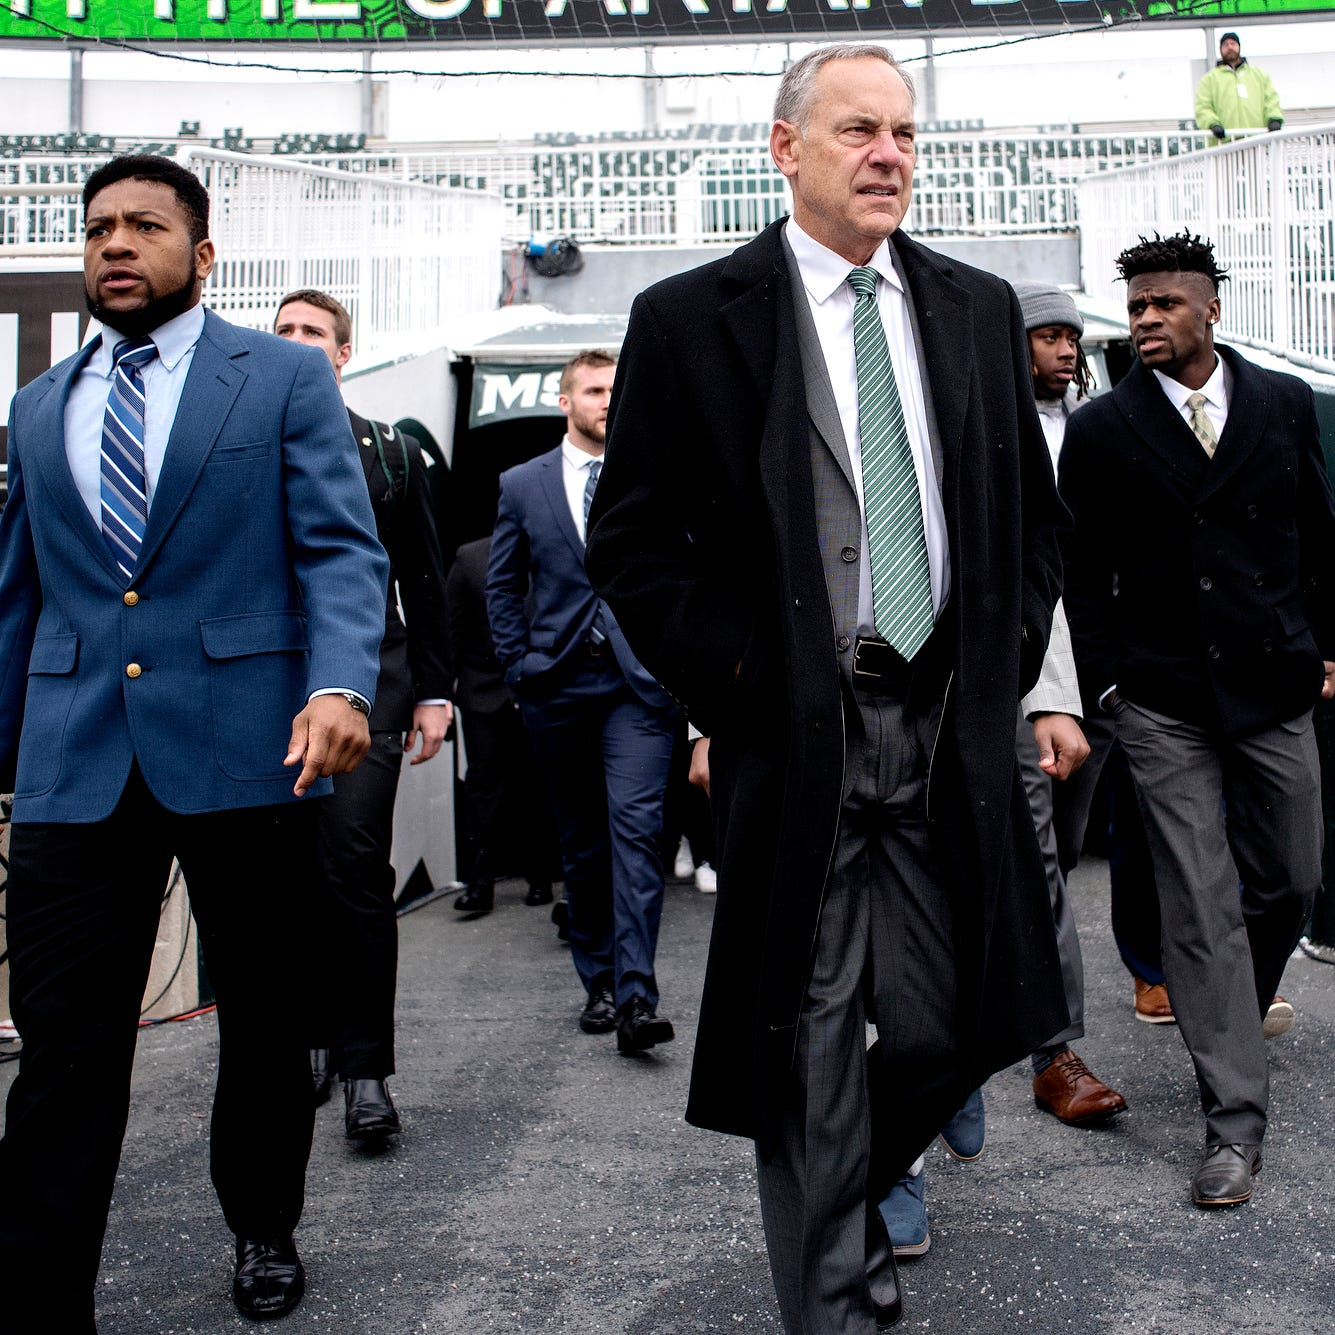 Michigan State football, basketball made-up mailbag: Are folks being too hard on Dantonio?